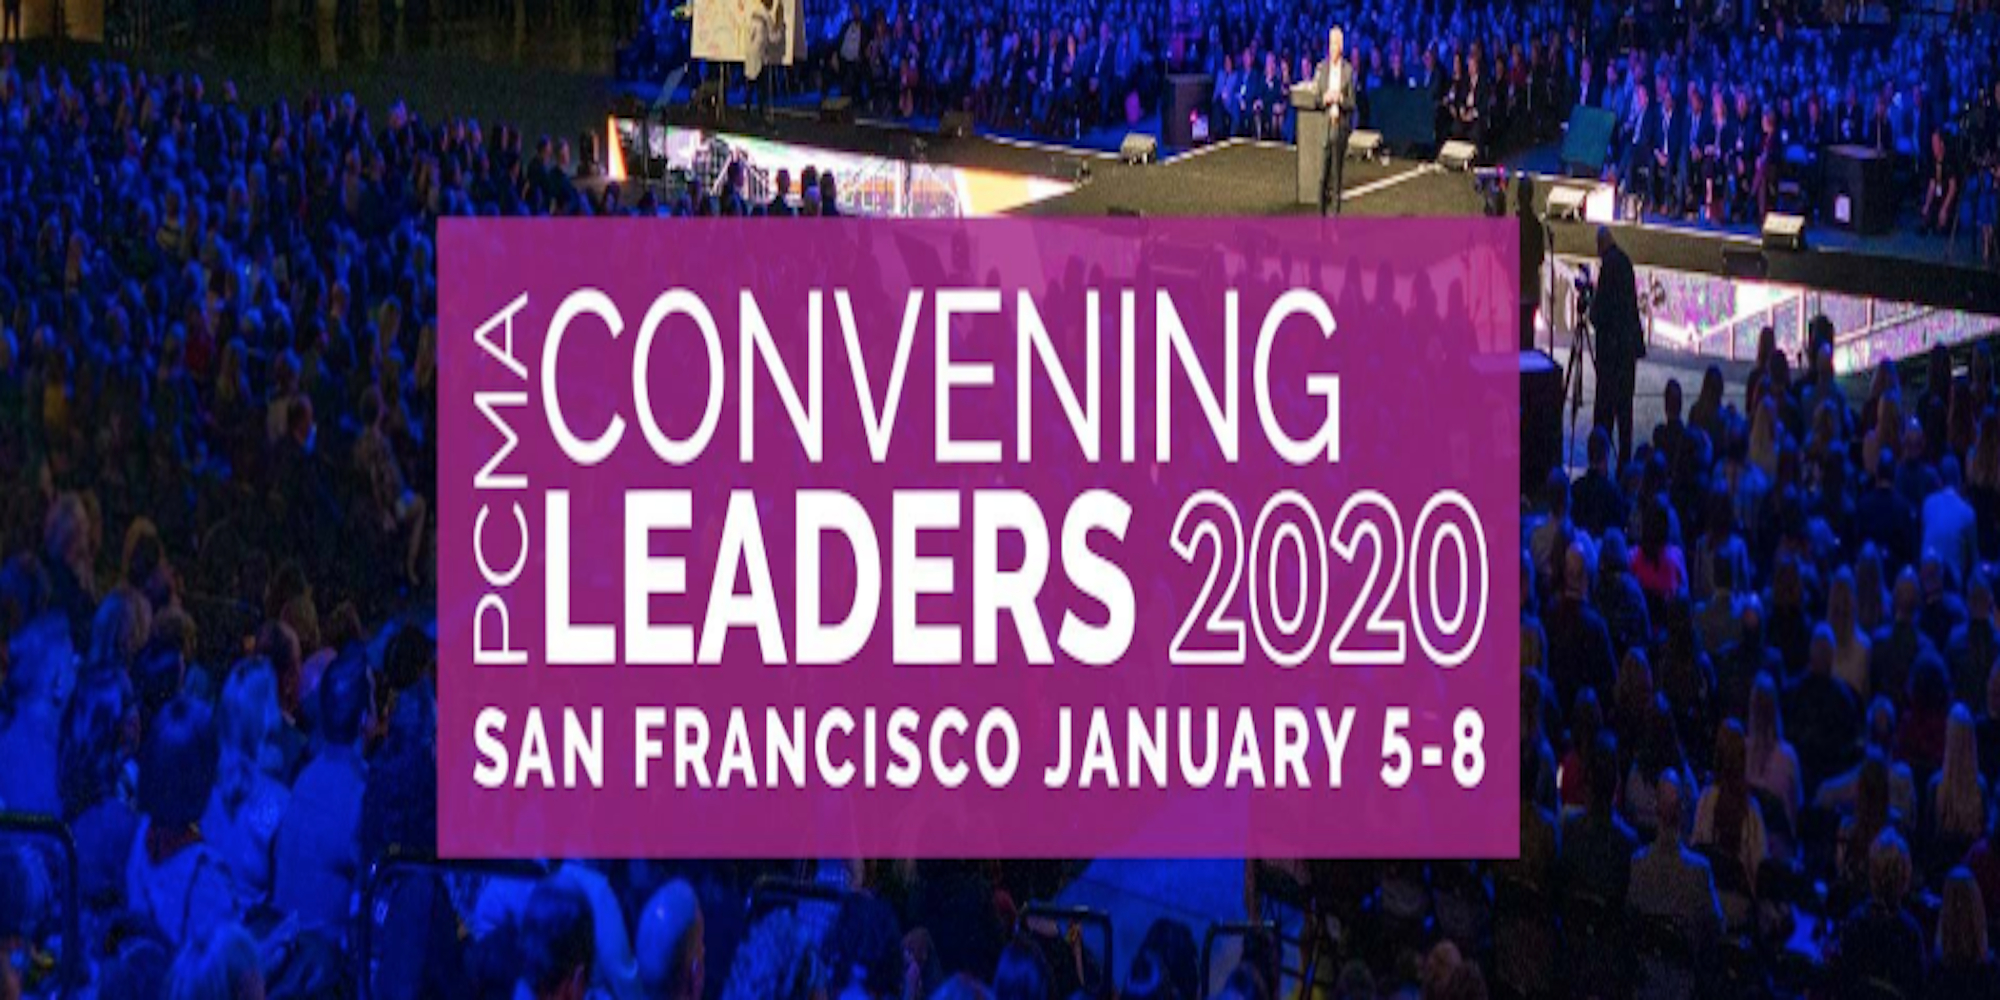 PCMA Convening Leaders 2020